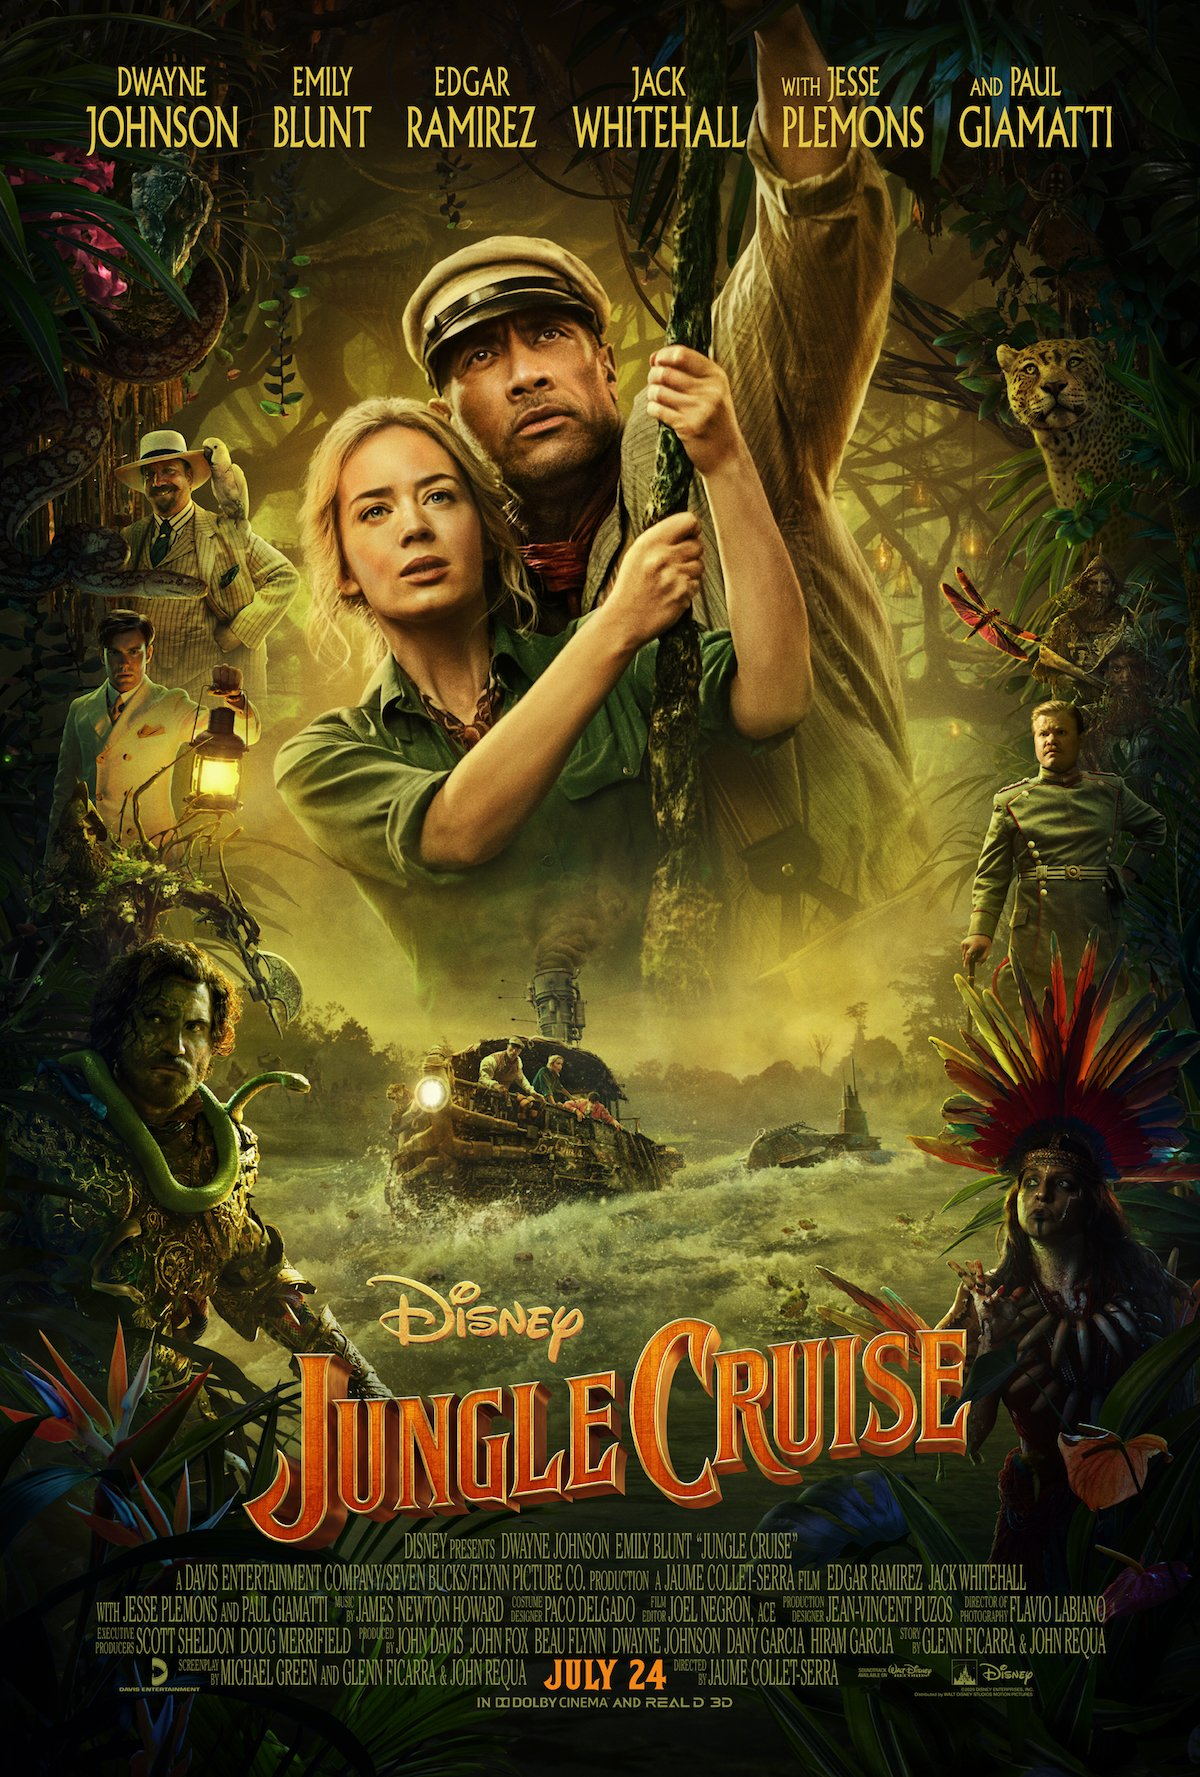 Jungle Cruise's new poster